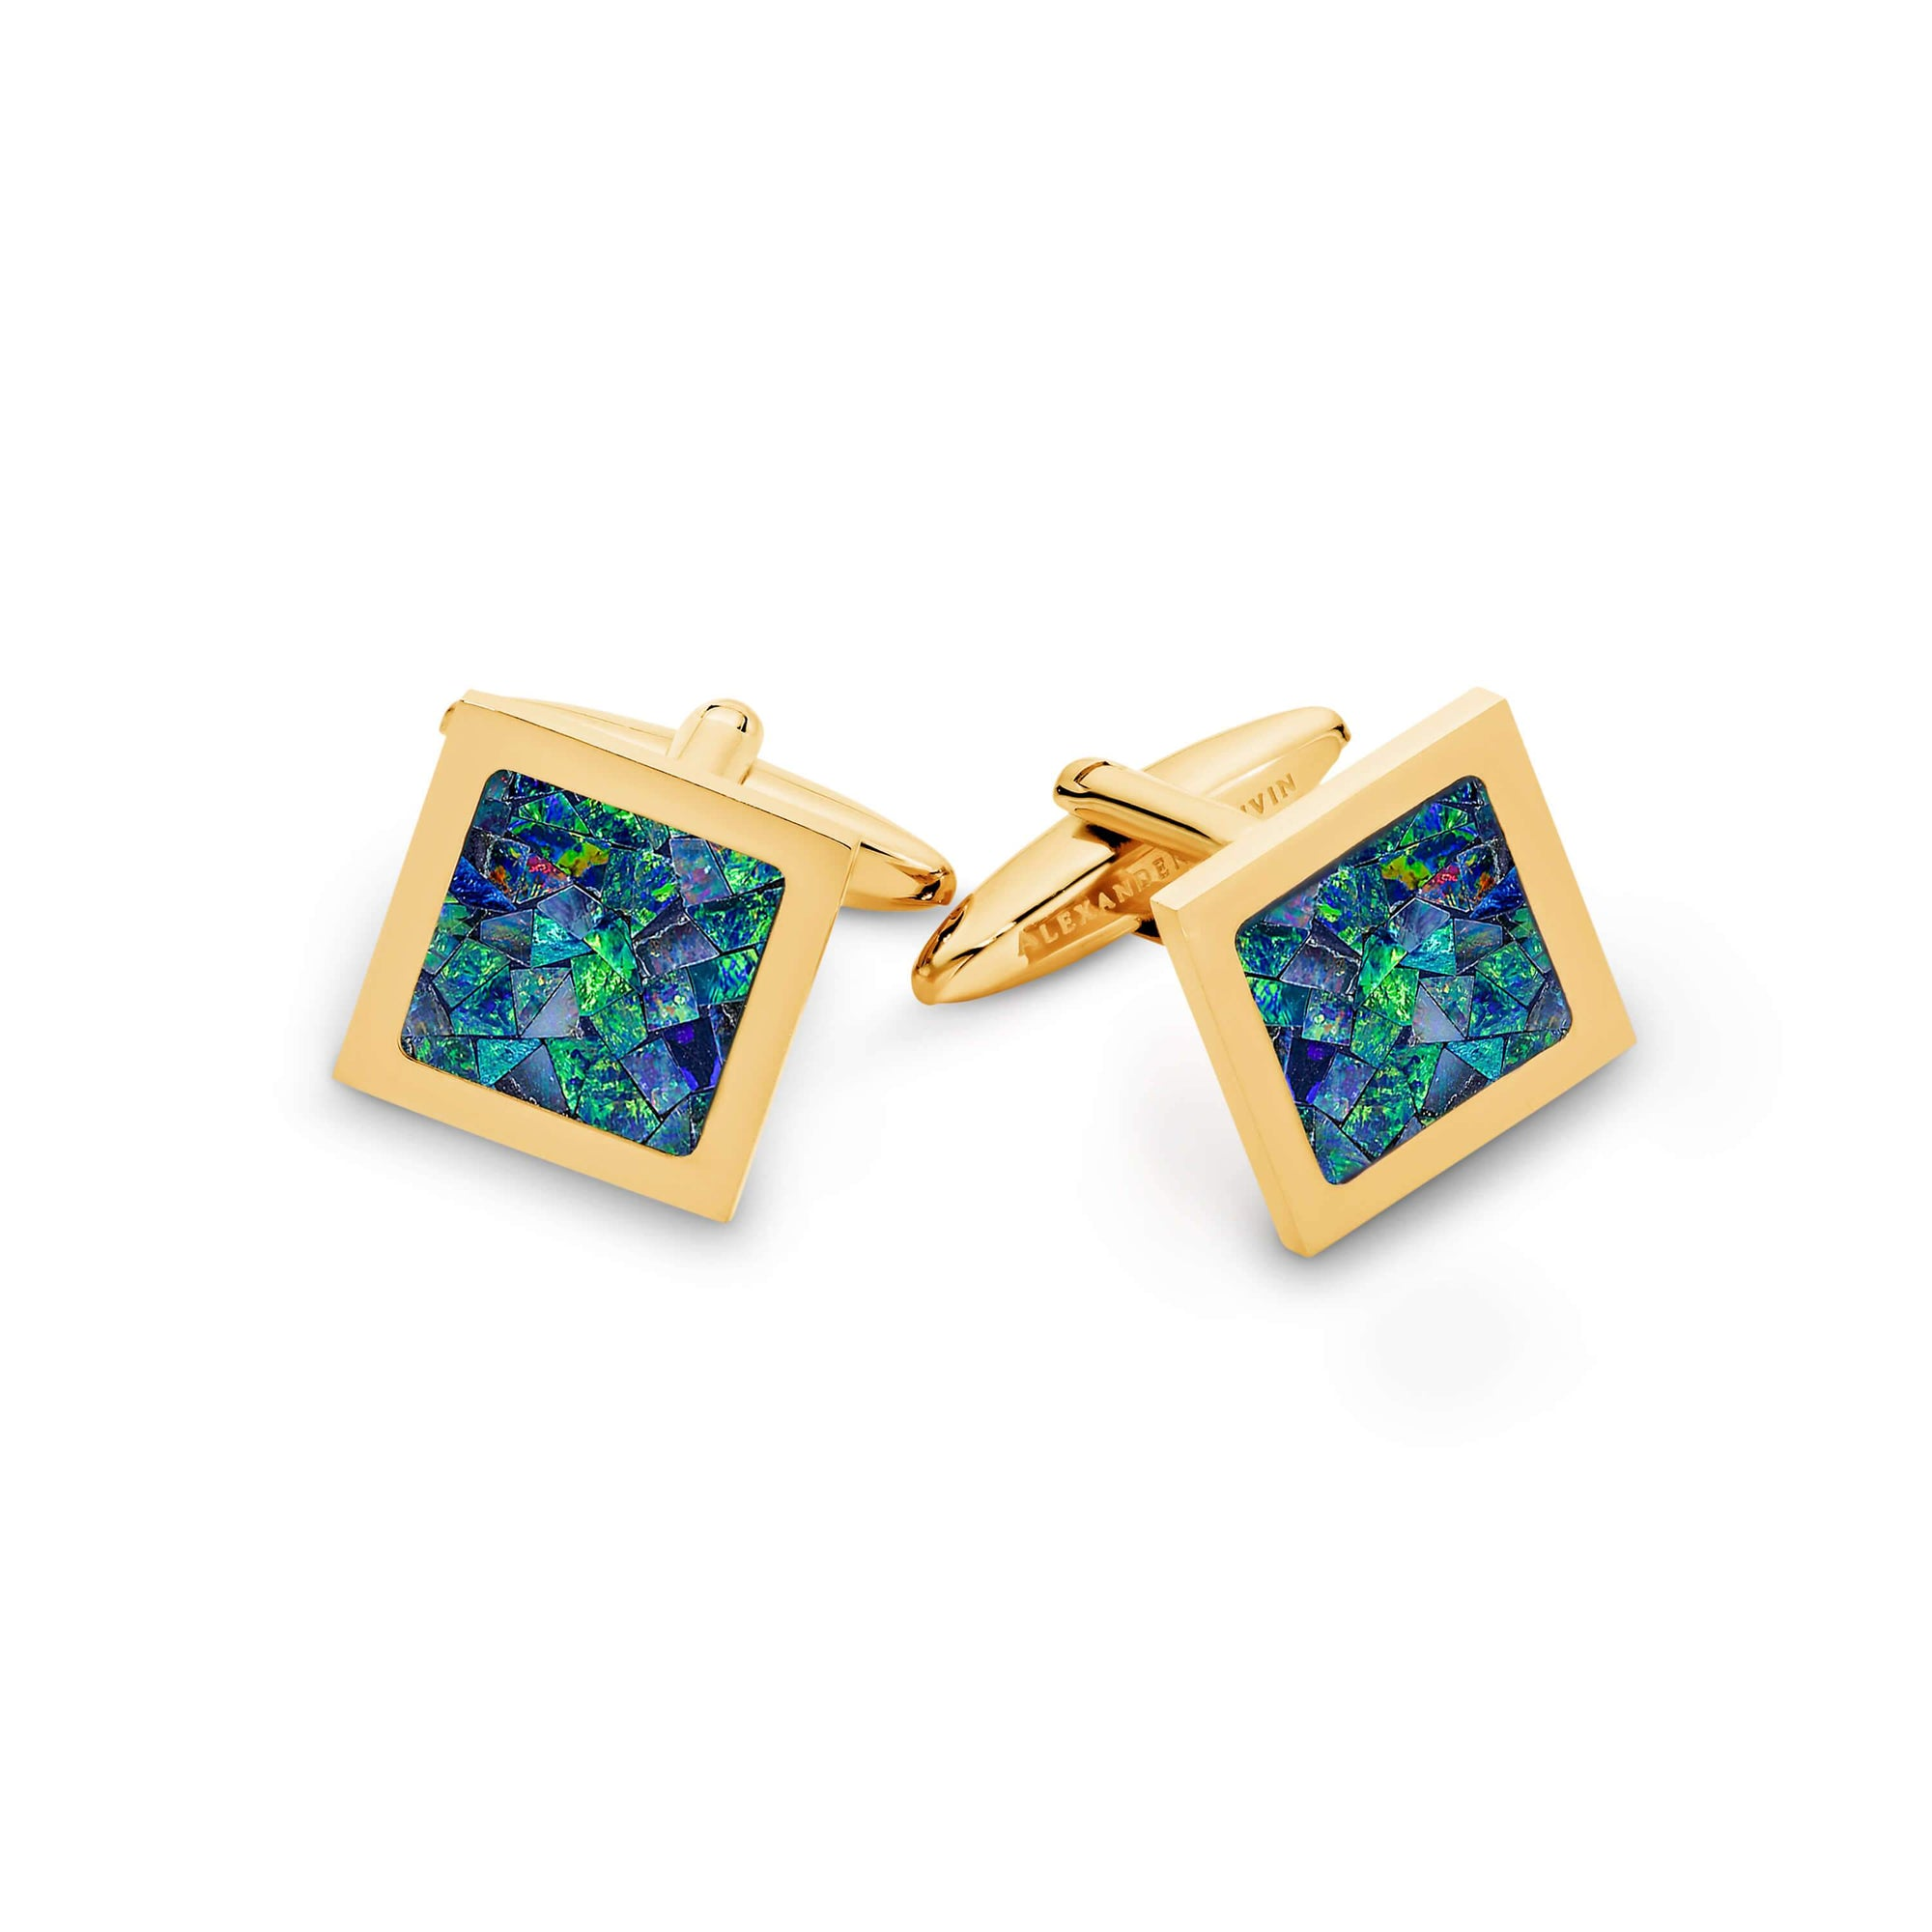 Square Premium Opal Cufflinks (Green Yellow Gold) Classic & Modern Cufflinks Clinks Australia Default